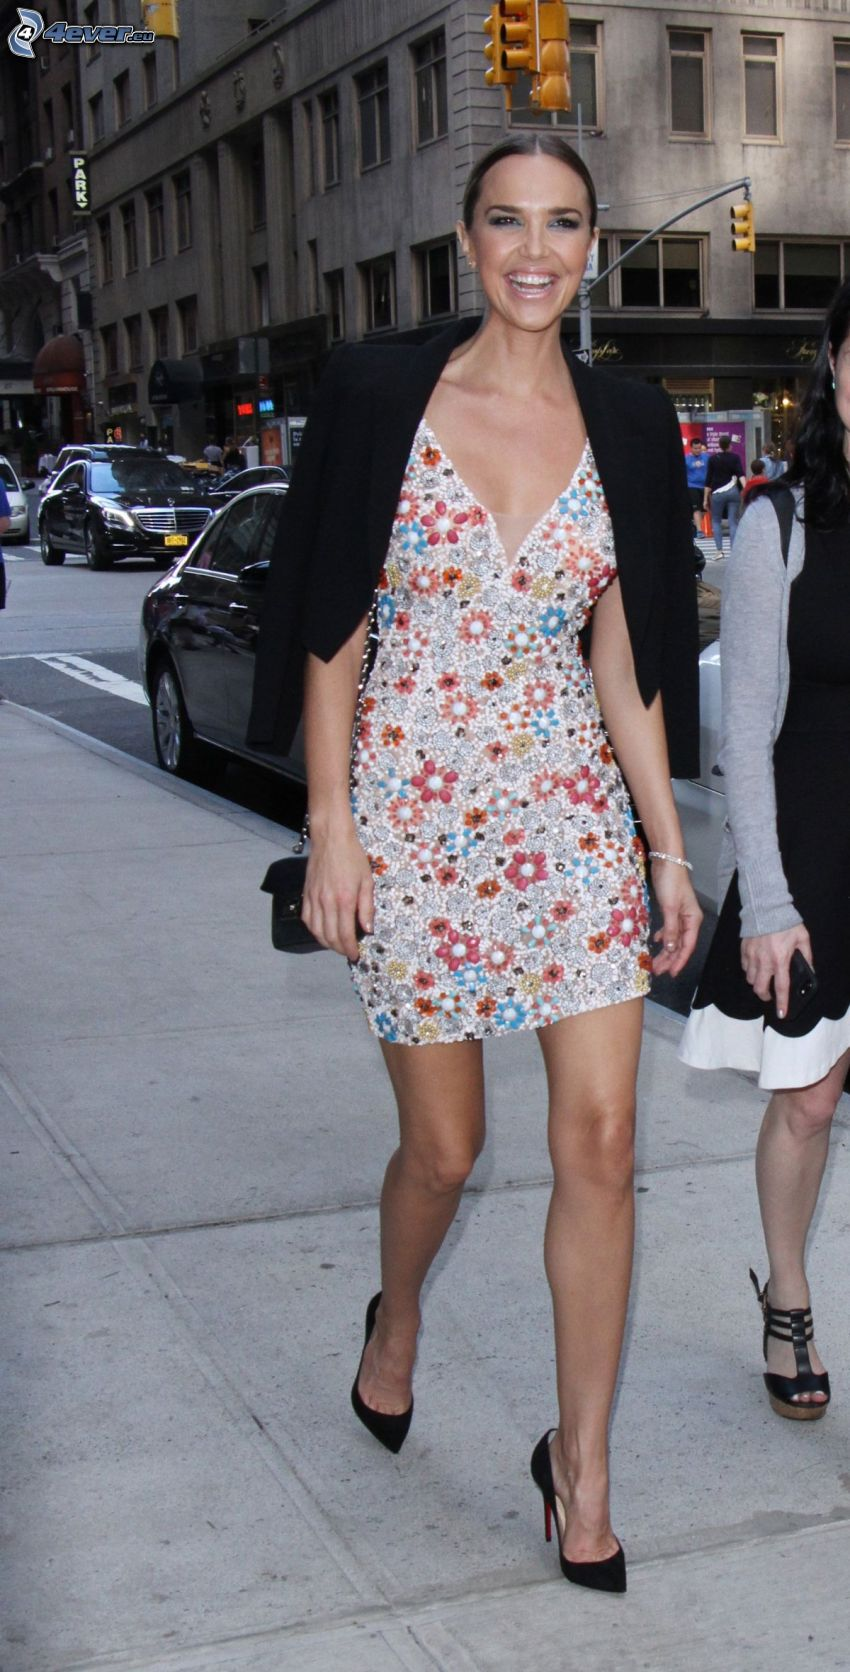 Arielle Kebbel, laughter, pumps, flowered dress, street